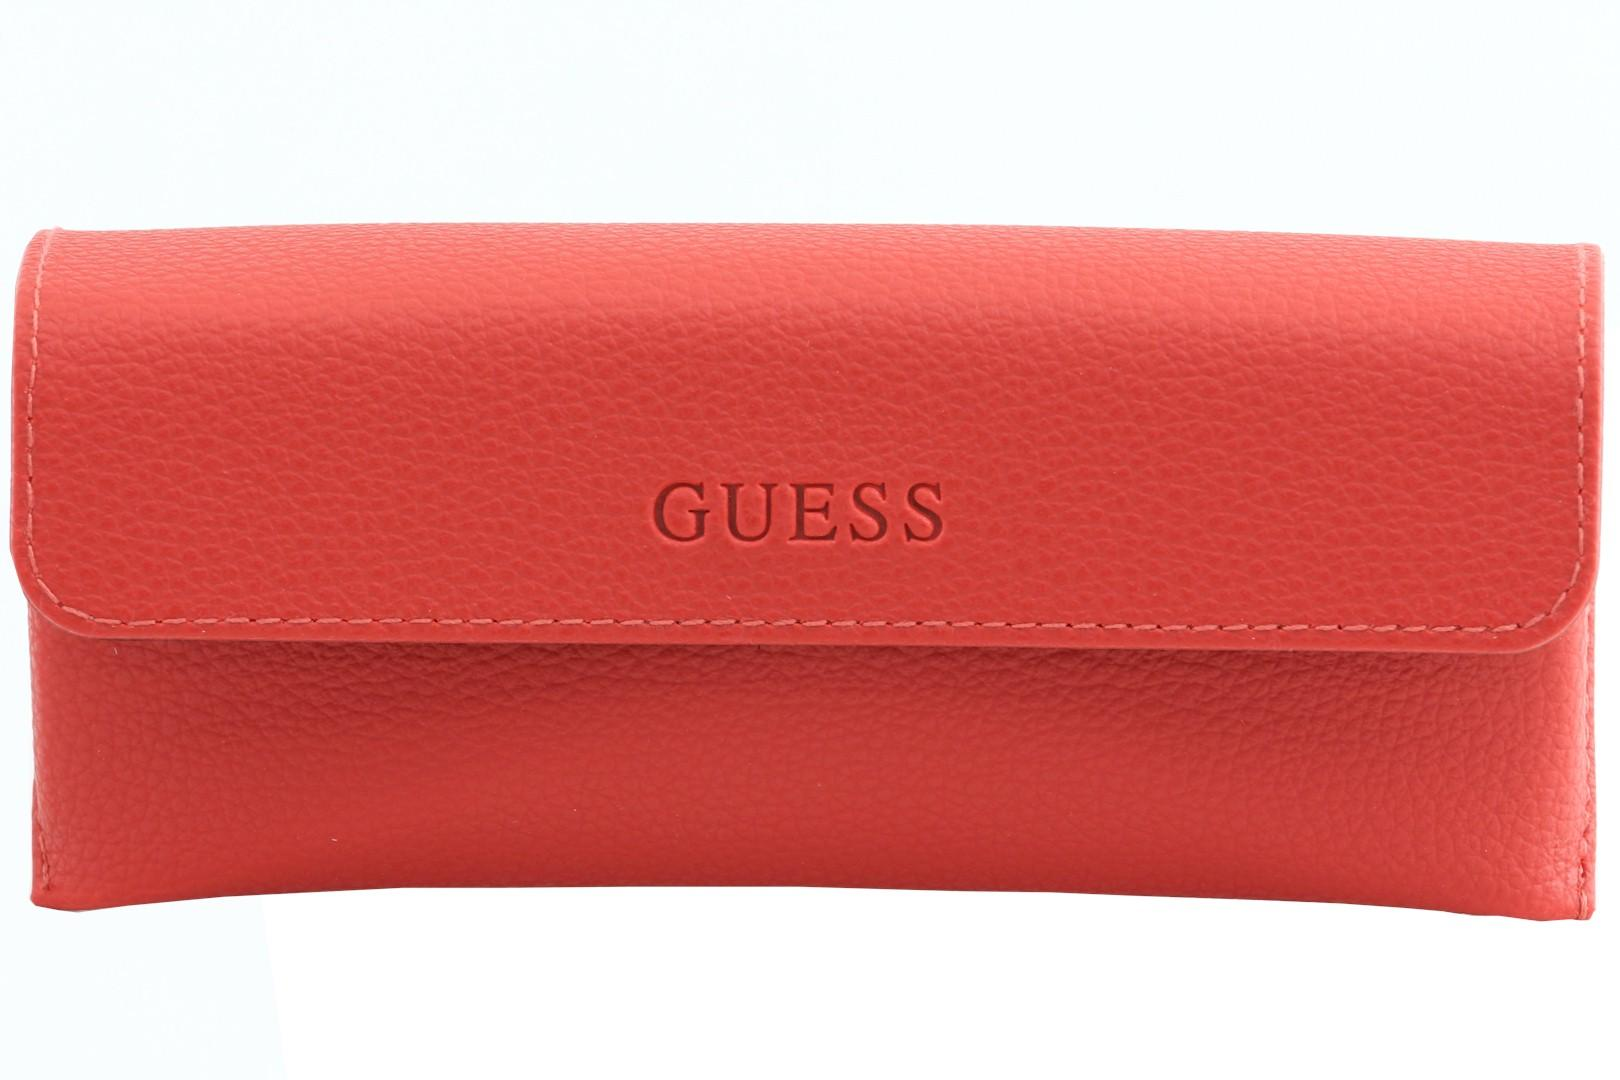 d7dae2a2497 ... Women s GM722 GM 722 Cat Eye Sunglasses by Guess By Marciano. 123456